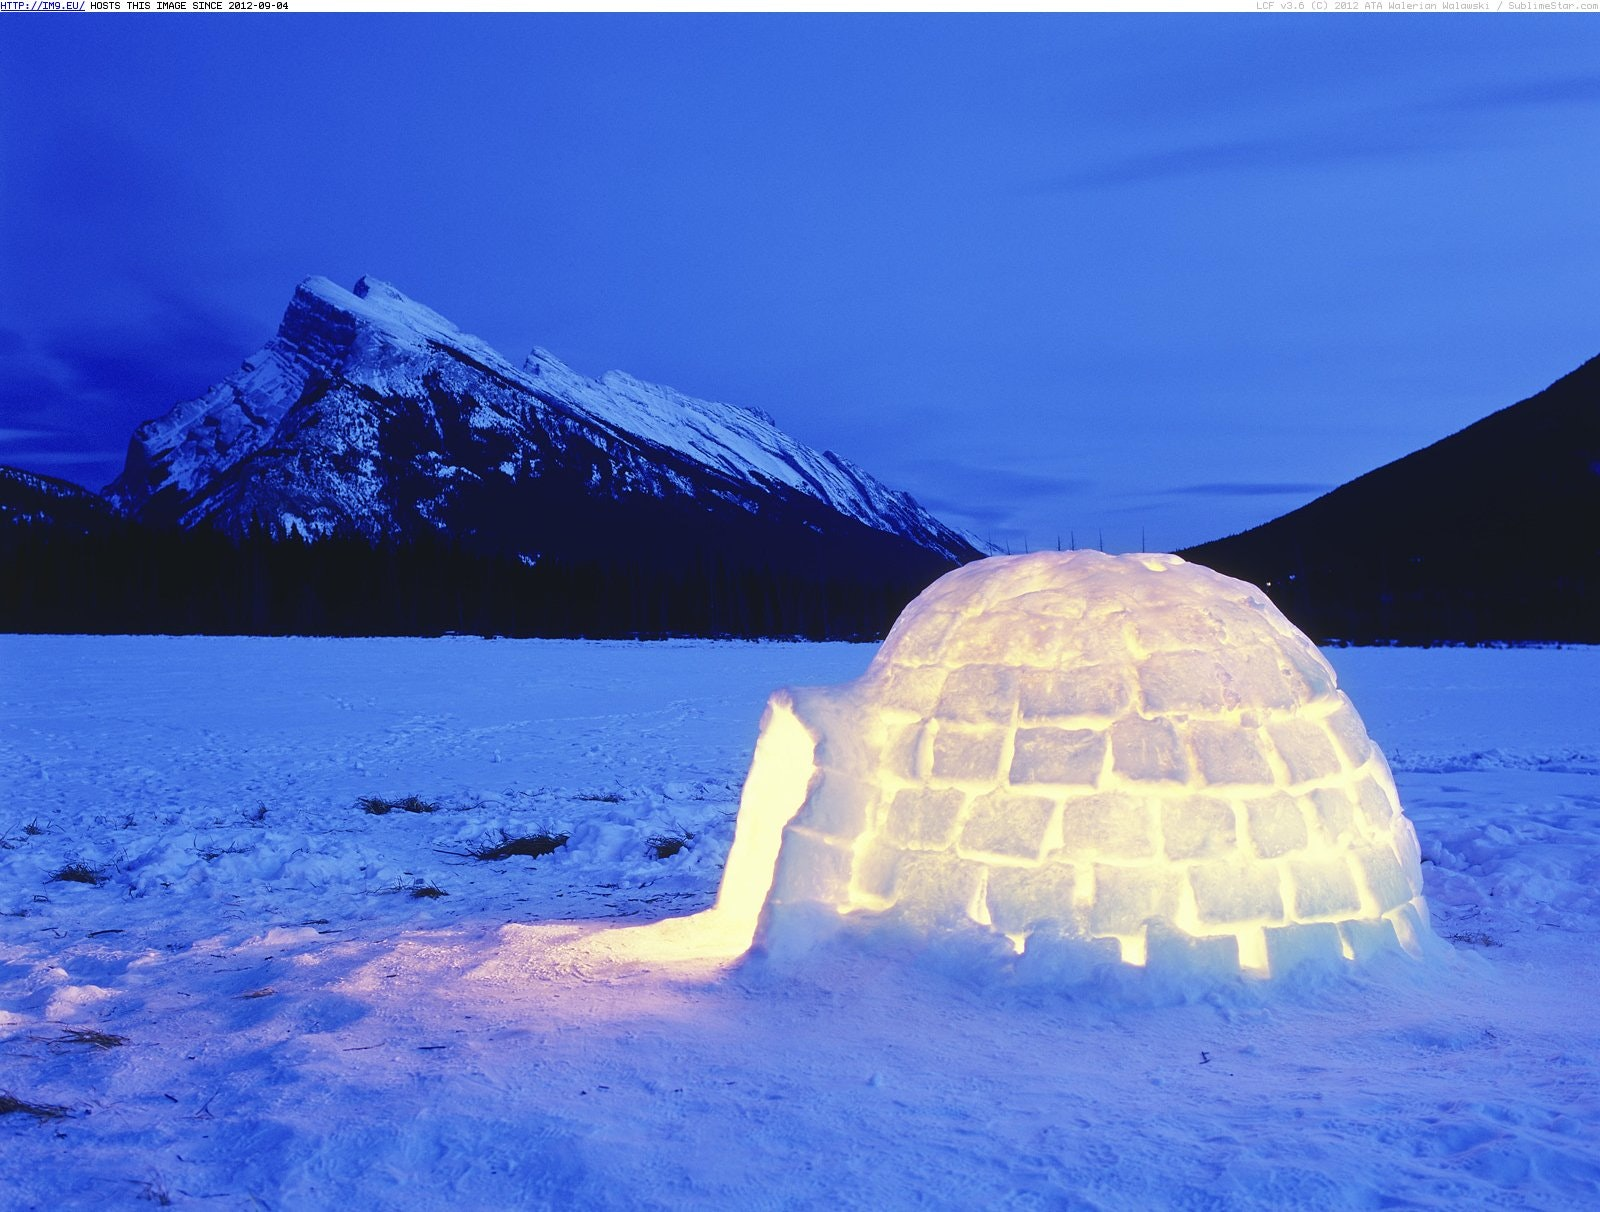 The Coolest Architects on Earth: Must-See Video of How to Build an Igloo and Other Ice Houses